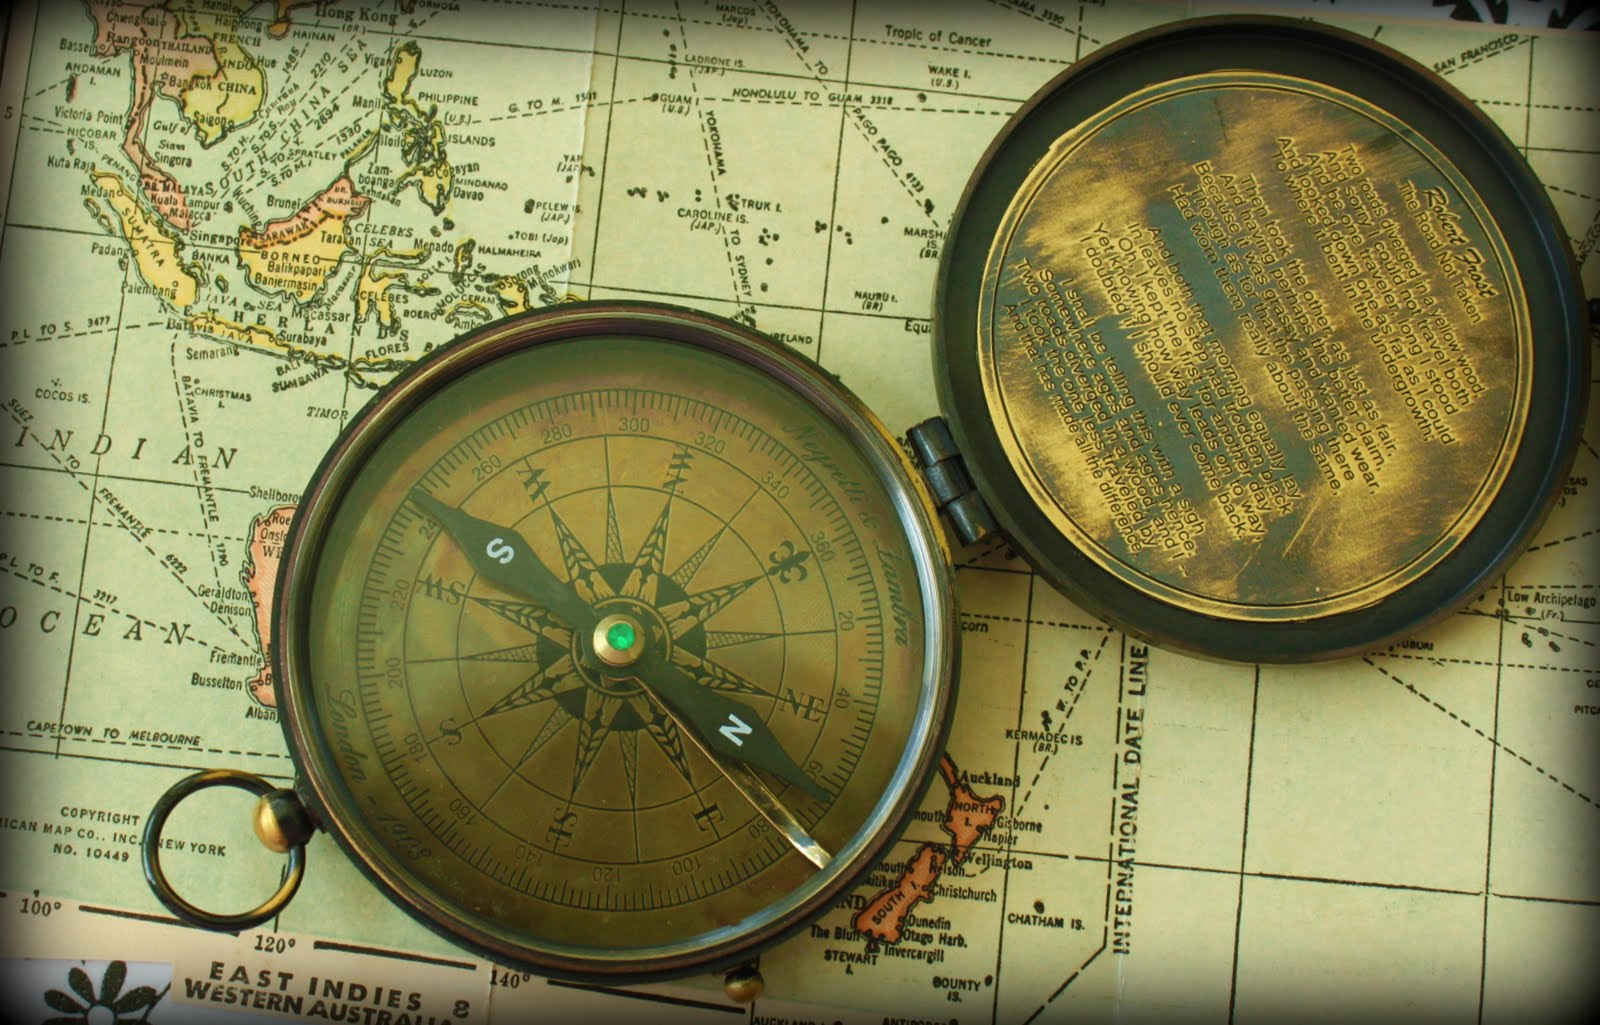 Vintage compass on a vintage map.